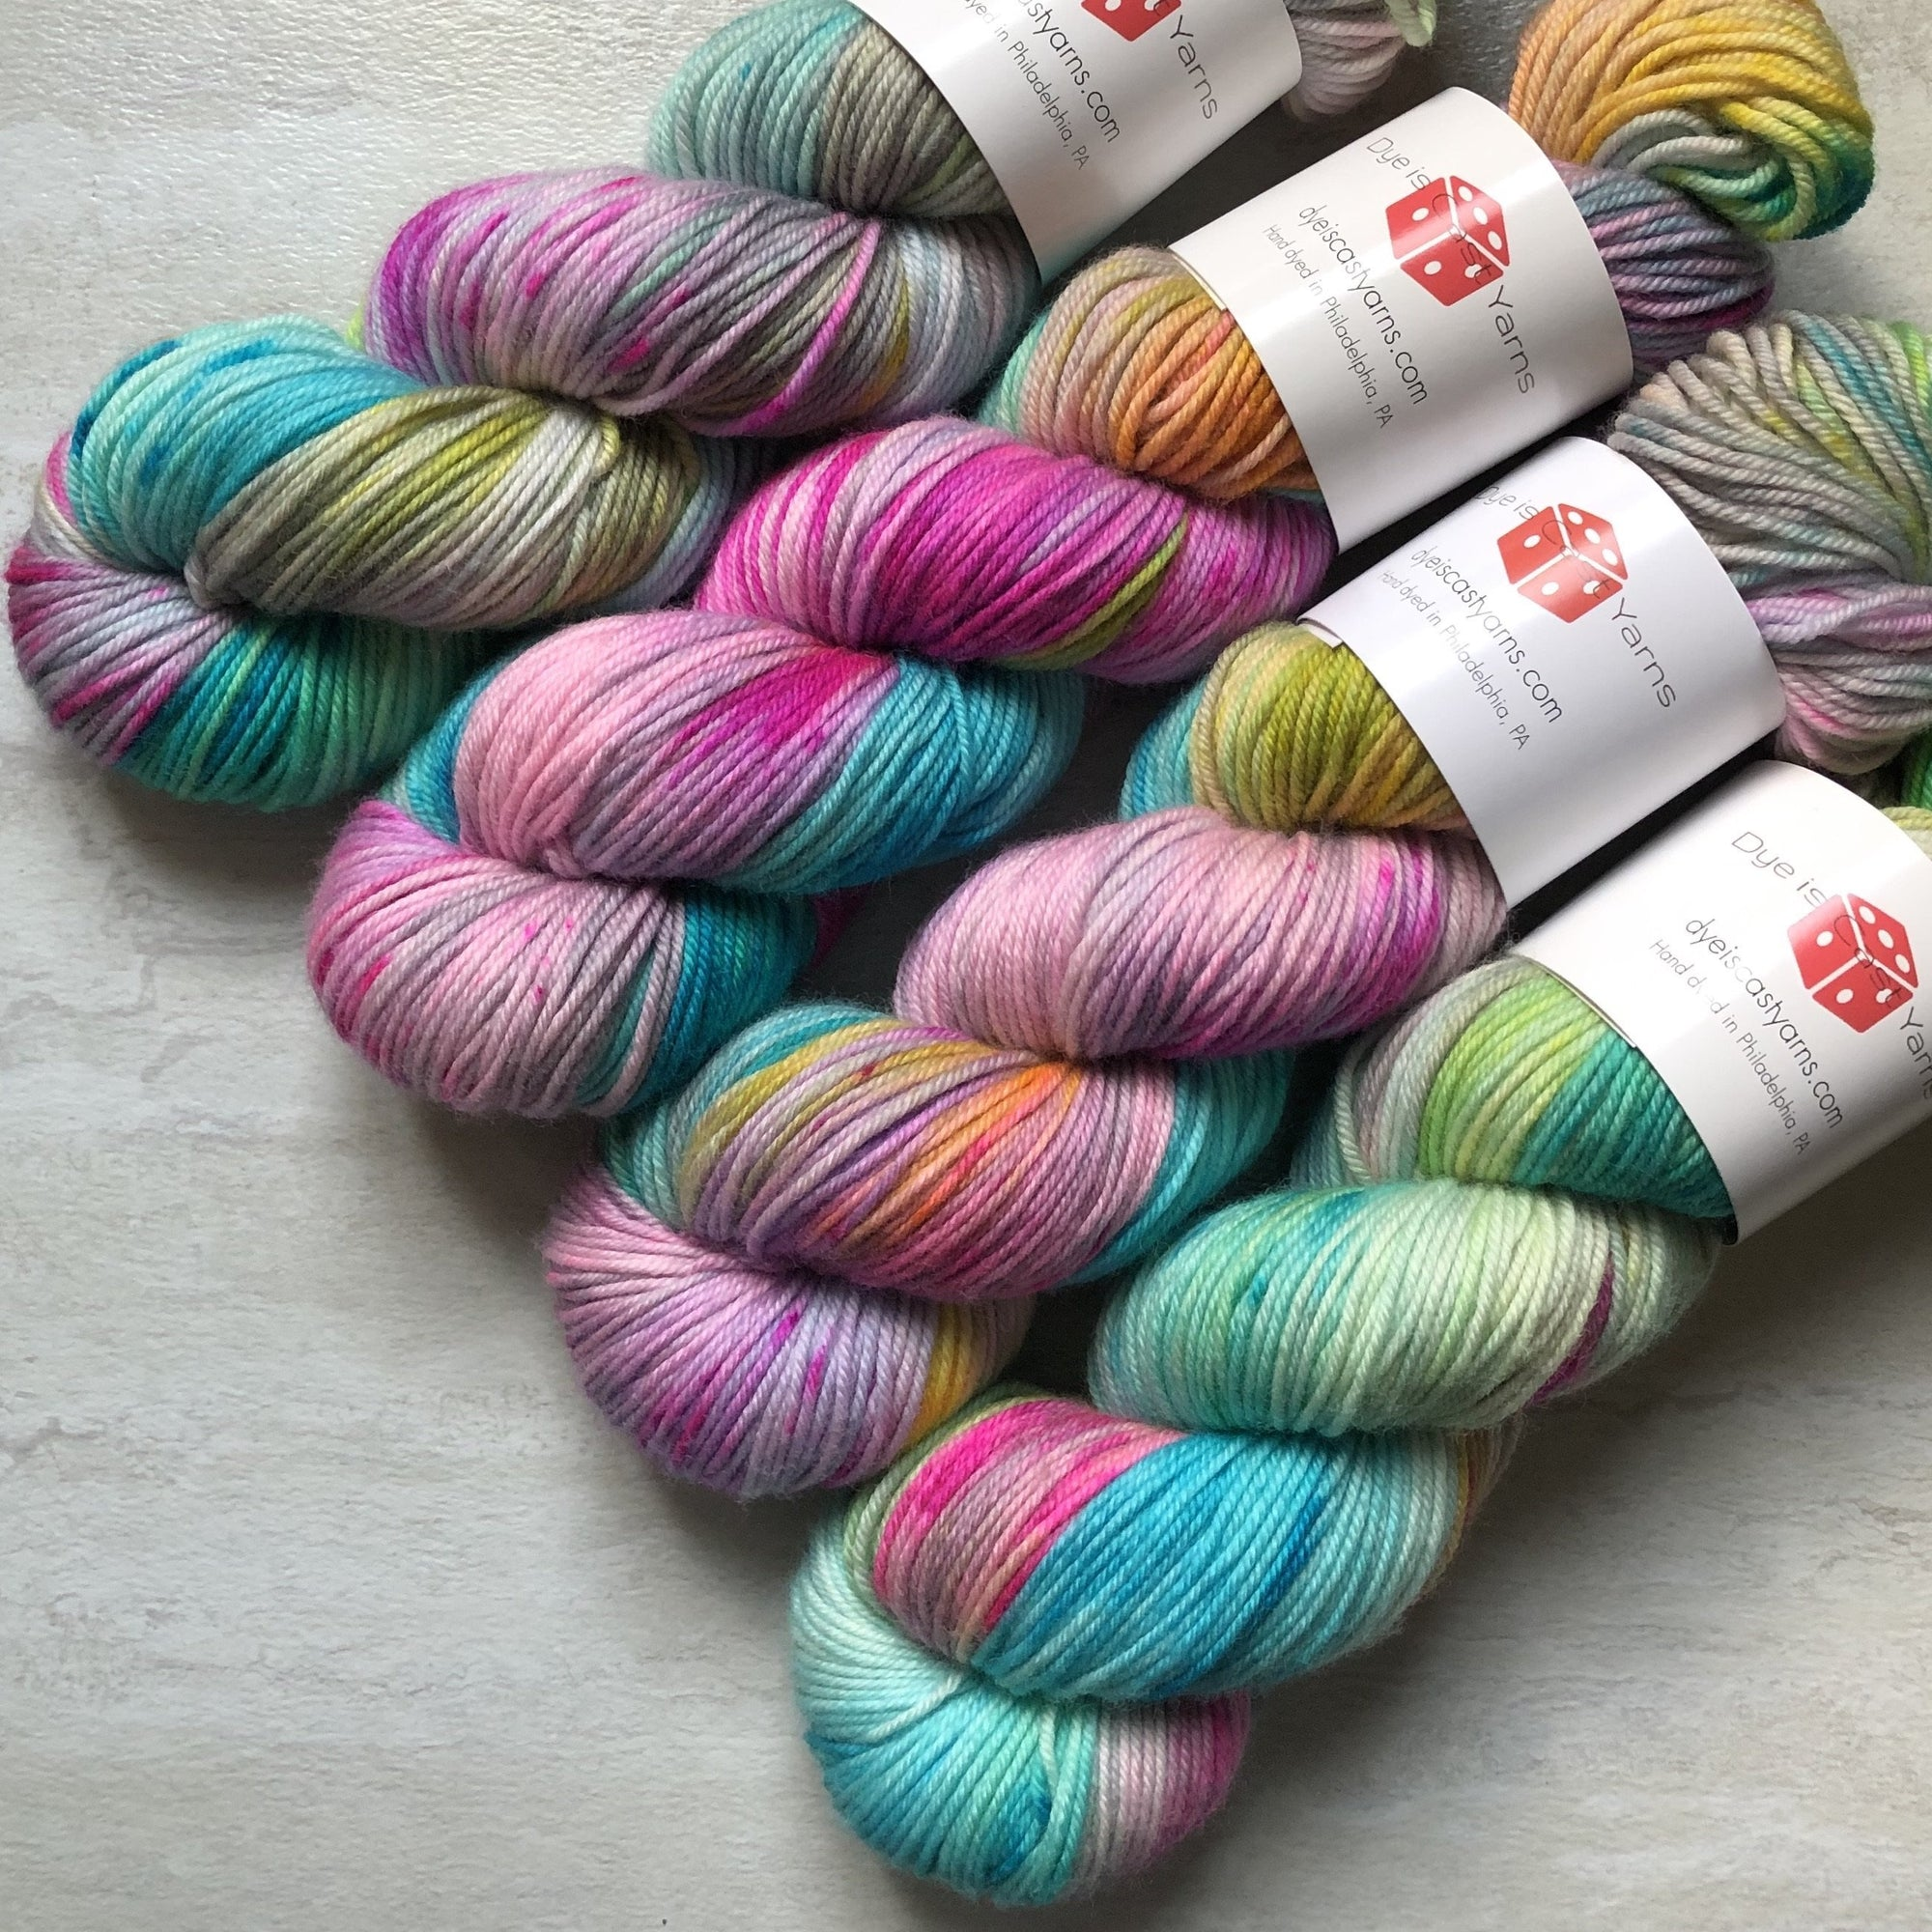 Rainicorn - Squish Like Grape DK